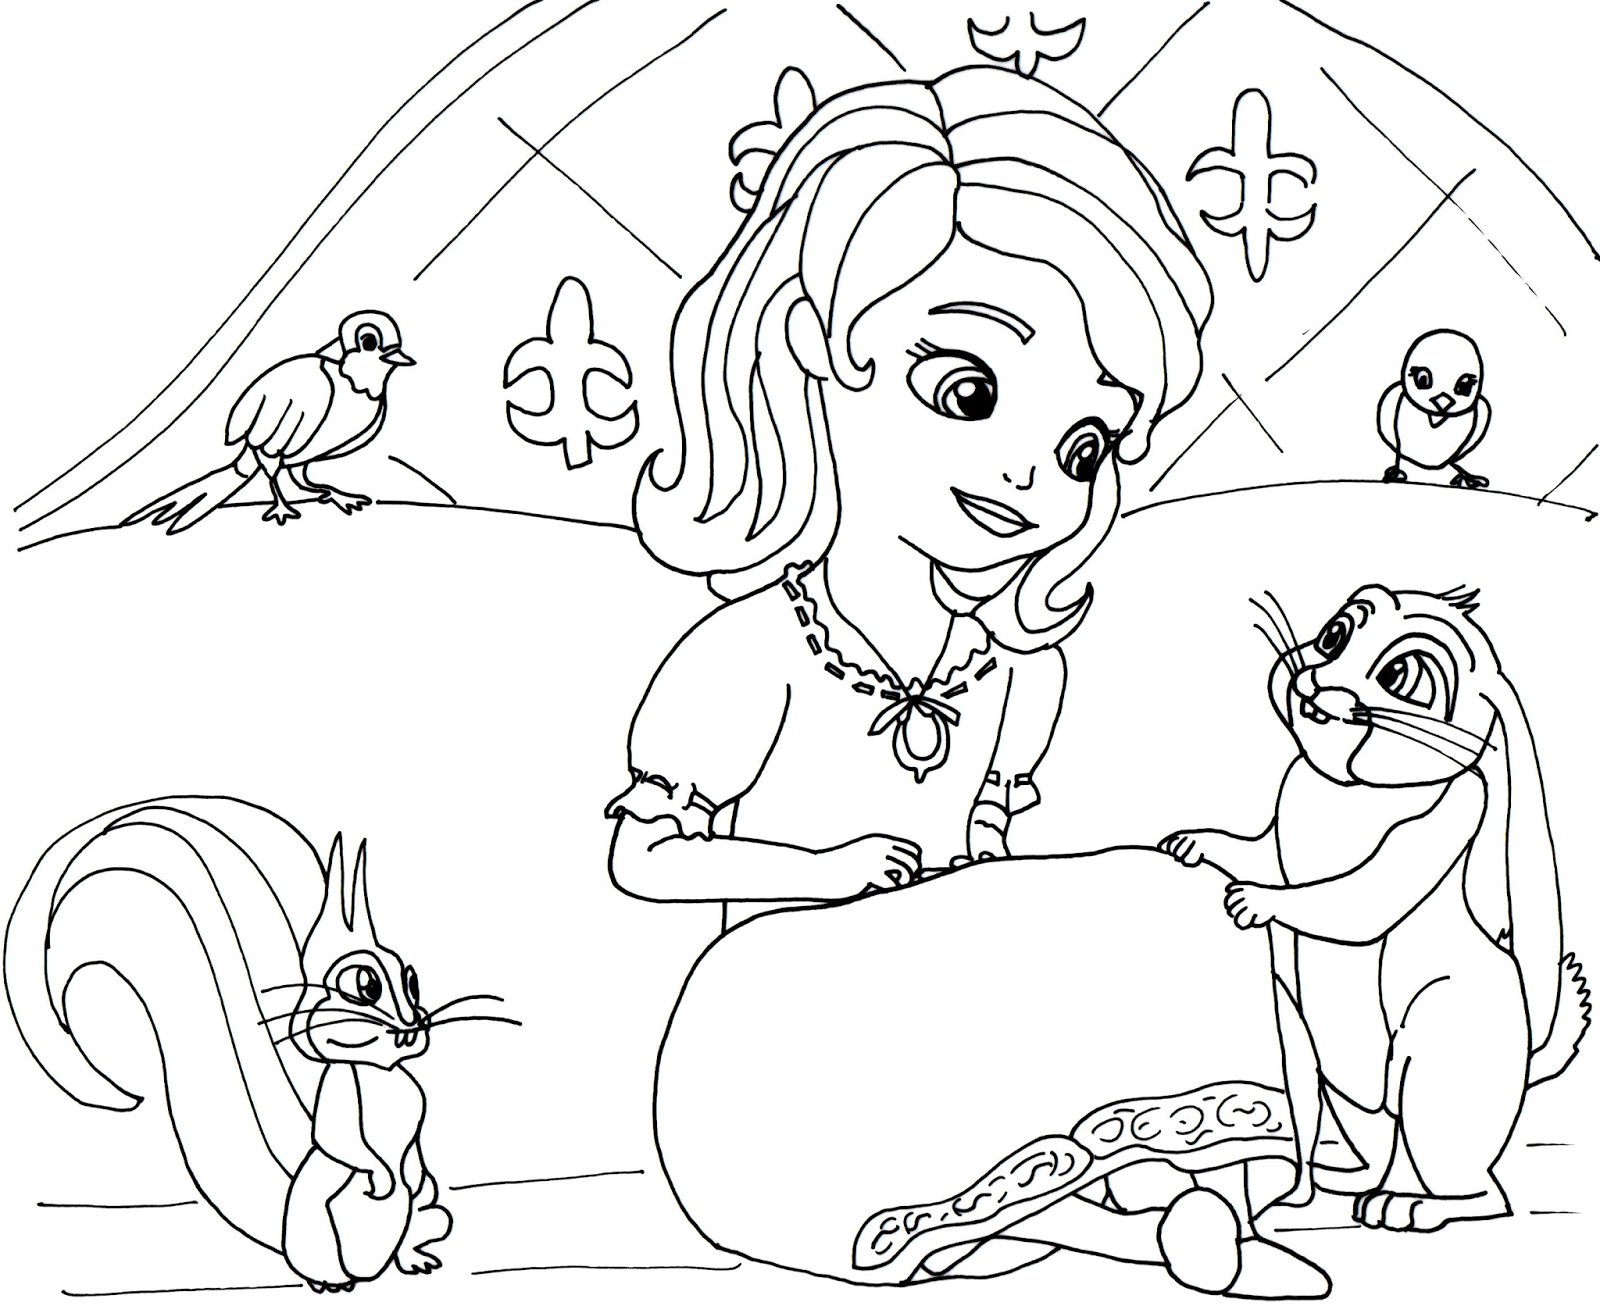 sofia the first coloring page in night gown